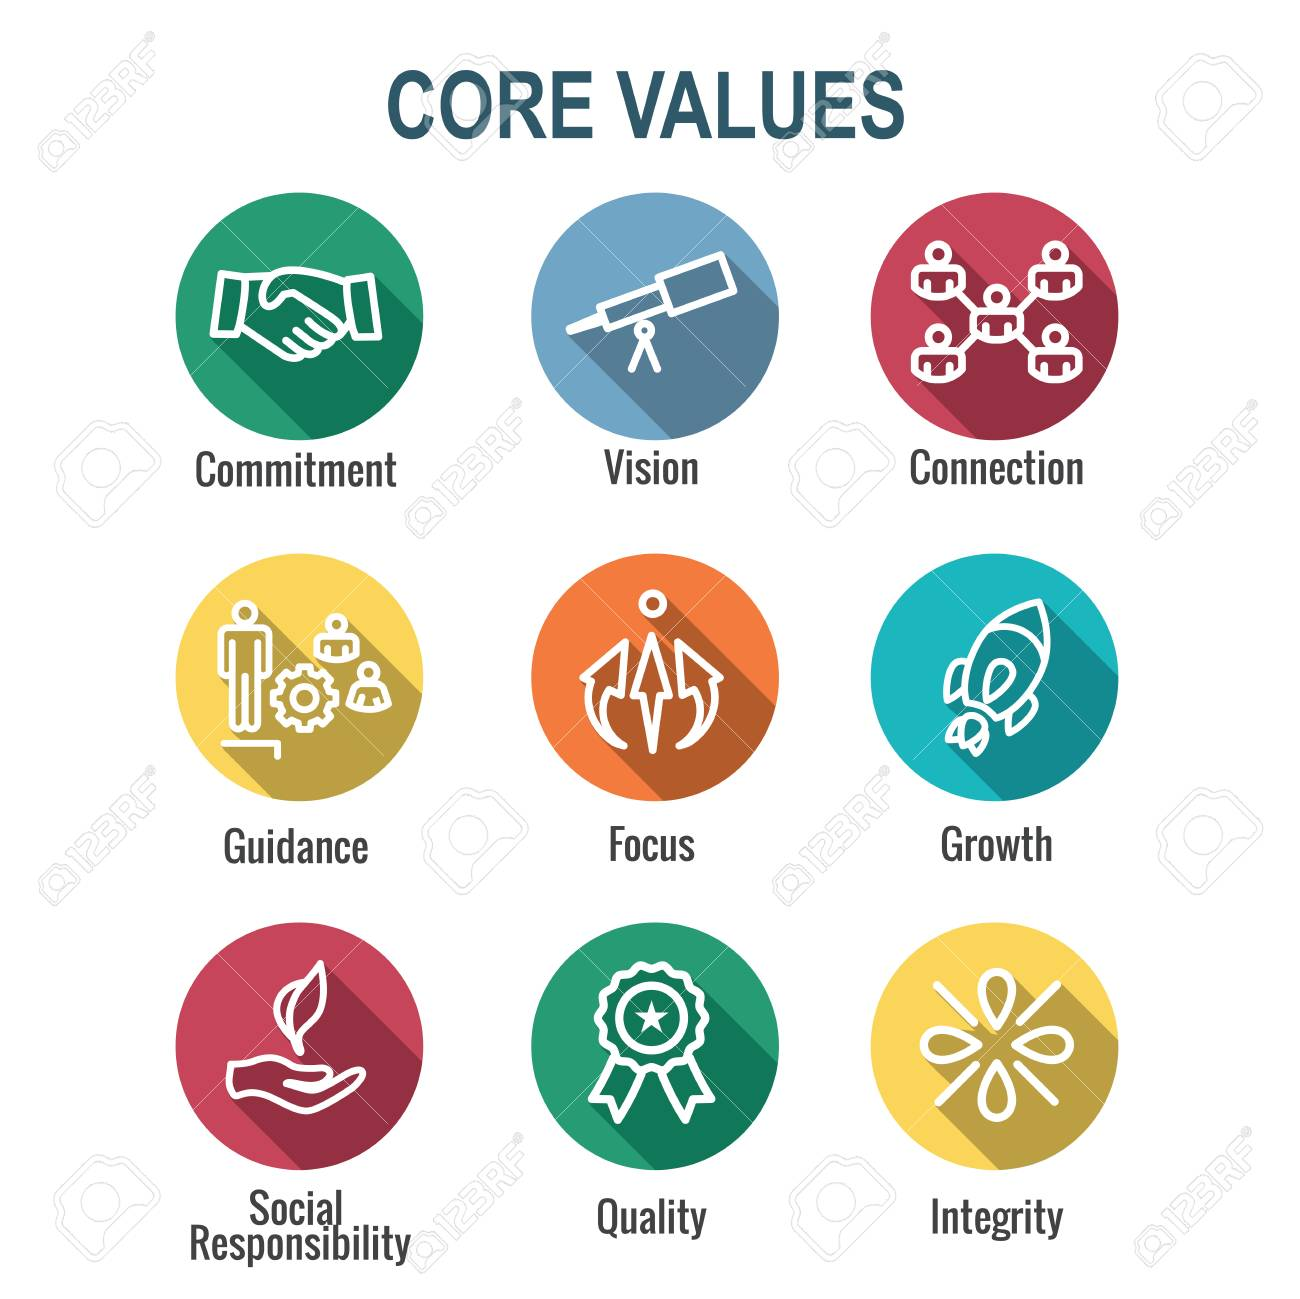 Core Values Outline or Line Icon Conveying Integrity & Purpose - 113541780